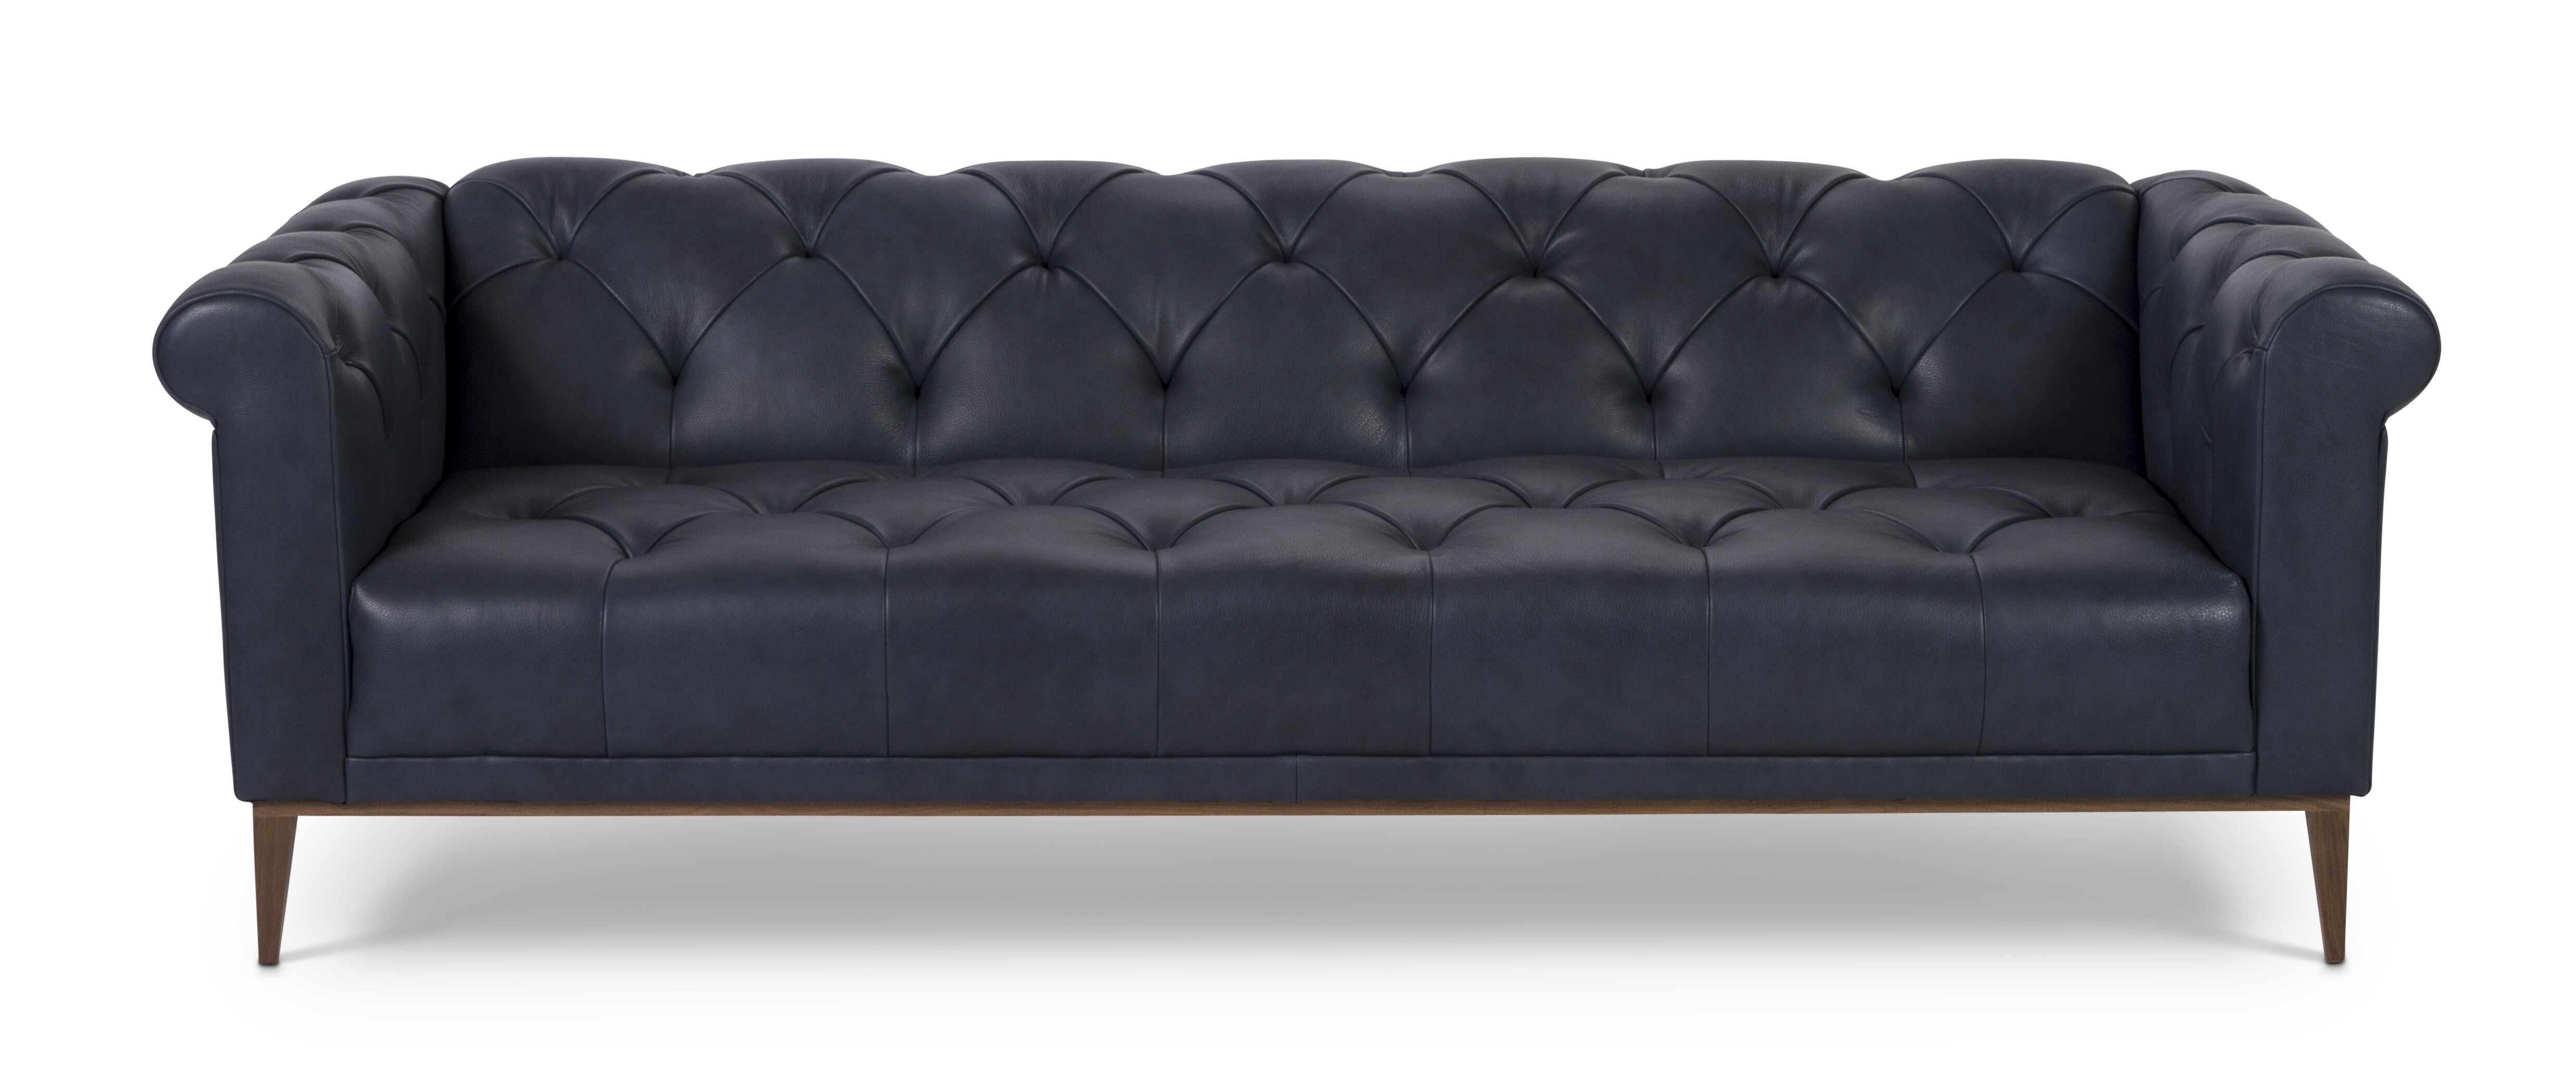 One For Victory Merritt Leather Chesterfield Sofa | Perigold